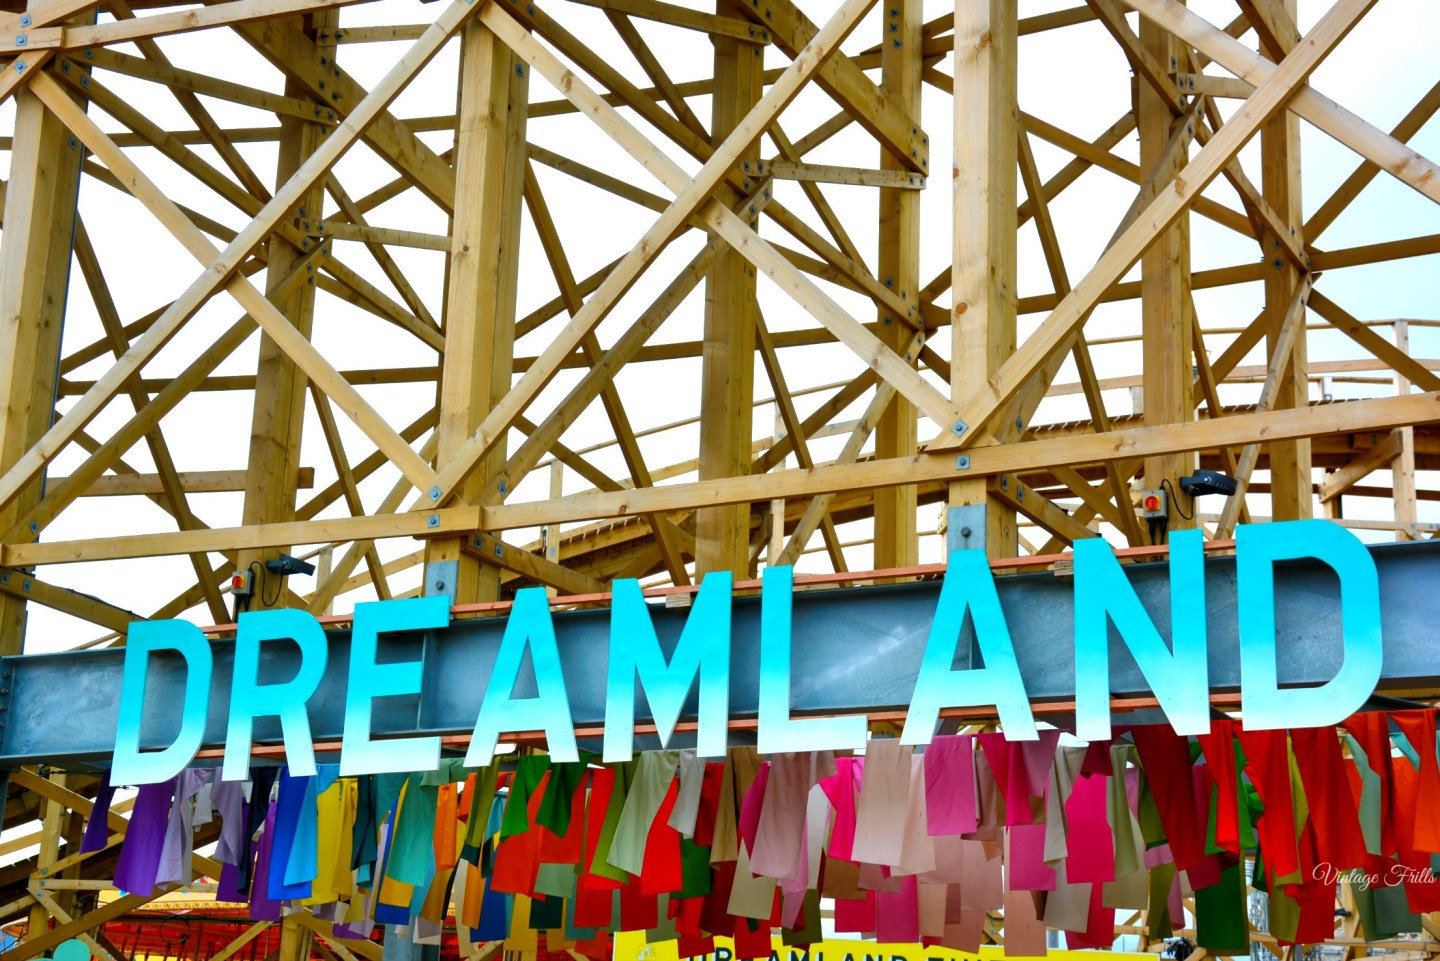 Dreamland Margate Sign